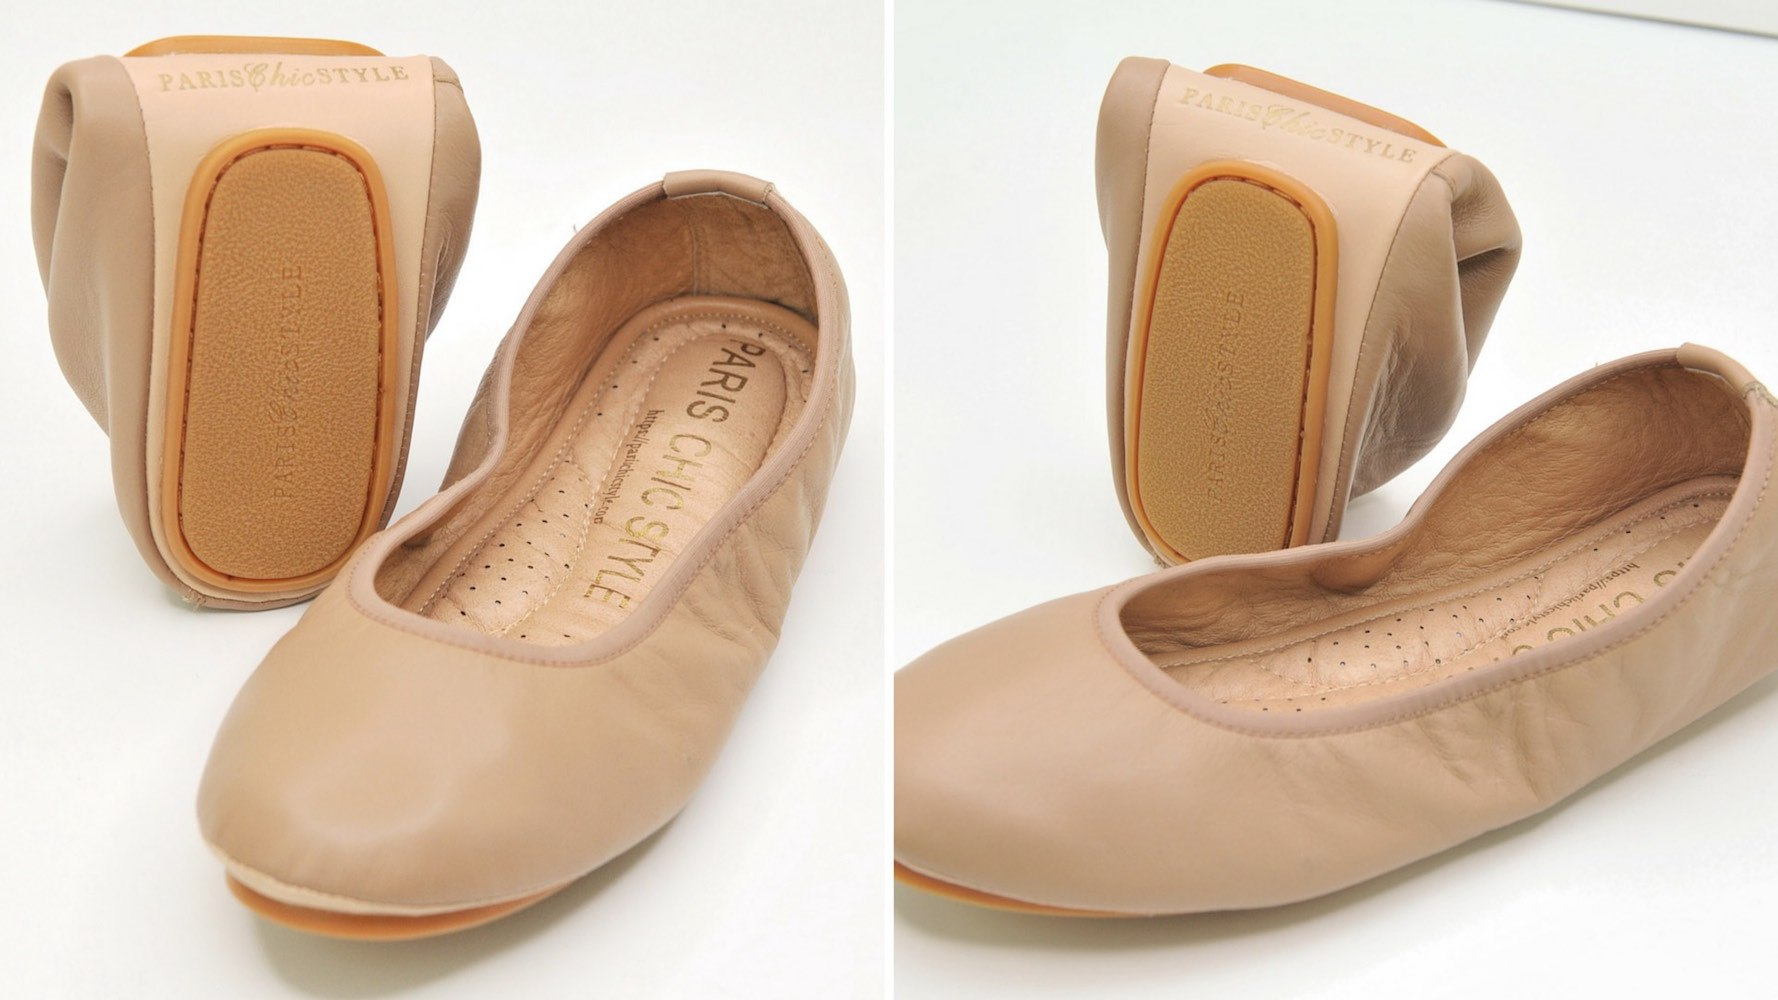 Frenchie Paris Handcrafted Foldable Ballet Flats